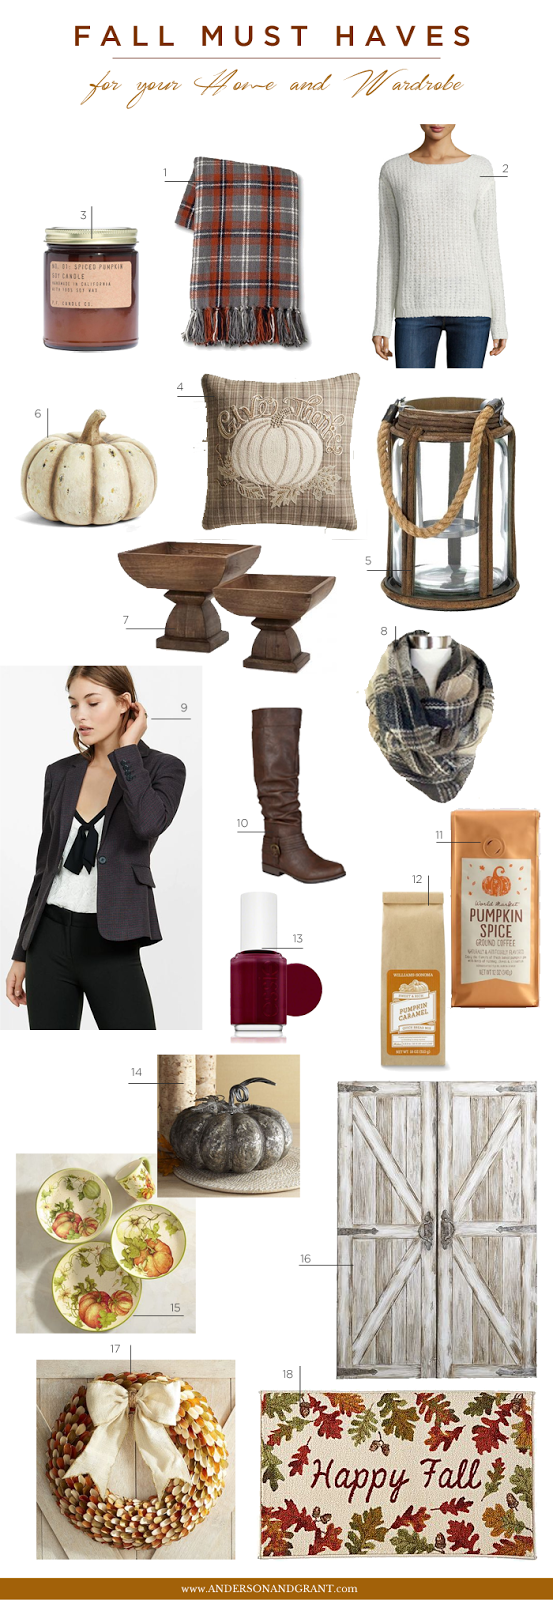 Something about the fall season puts me in the mood to shop, whether it is for decor to decorate the house, clothing to wear, or things like soap and coffee in pumpkin scents and flavors.  Find out everything on my must have shopping list this autumn.  |  www.andersonandgrant.com